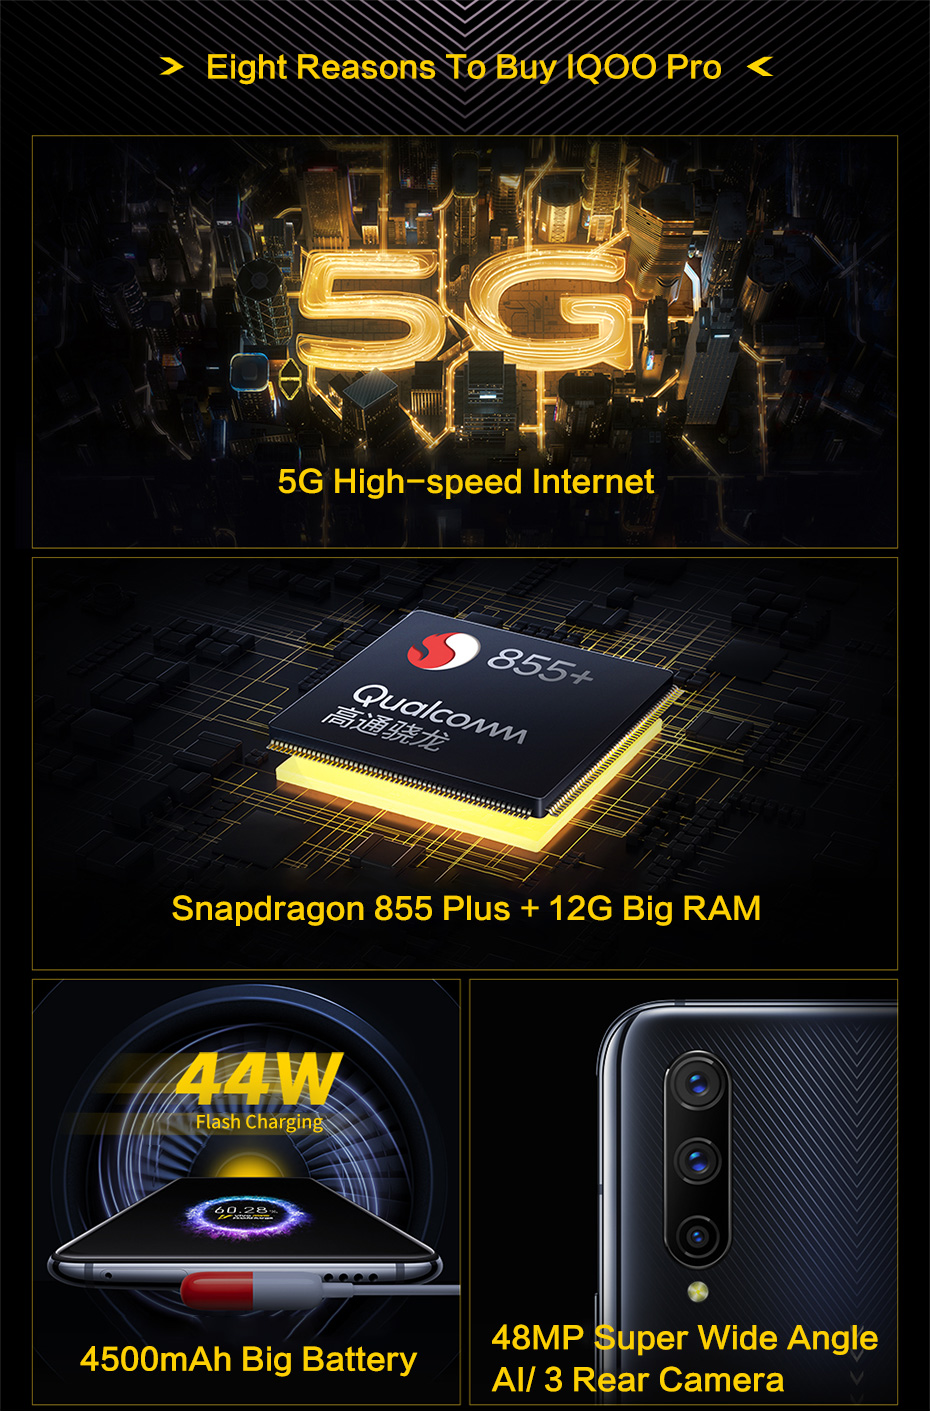 vivo iQOO Pro 5G Celular Mobile Phone Android 9.0 8G 256G Snapdragon 855 Plus 6.41'' NFC Super AMOLED 44W Fast Charge Smartphone